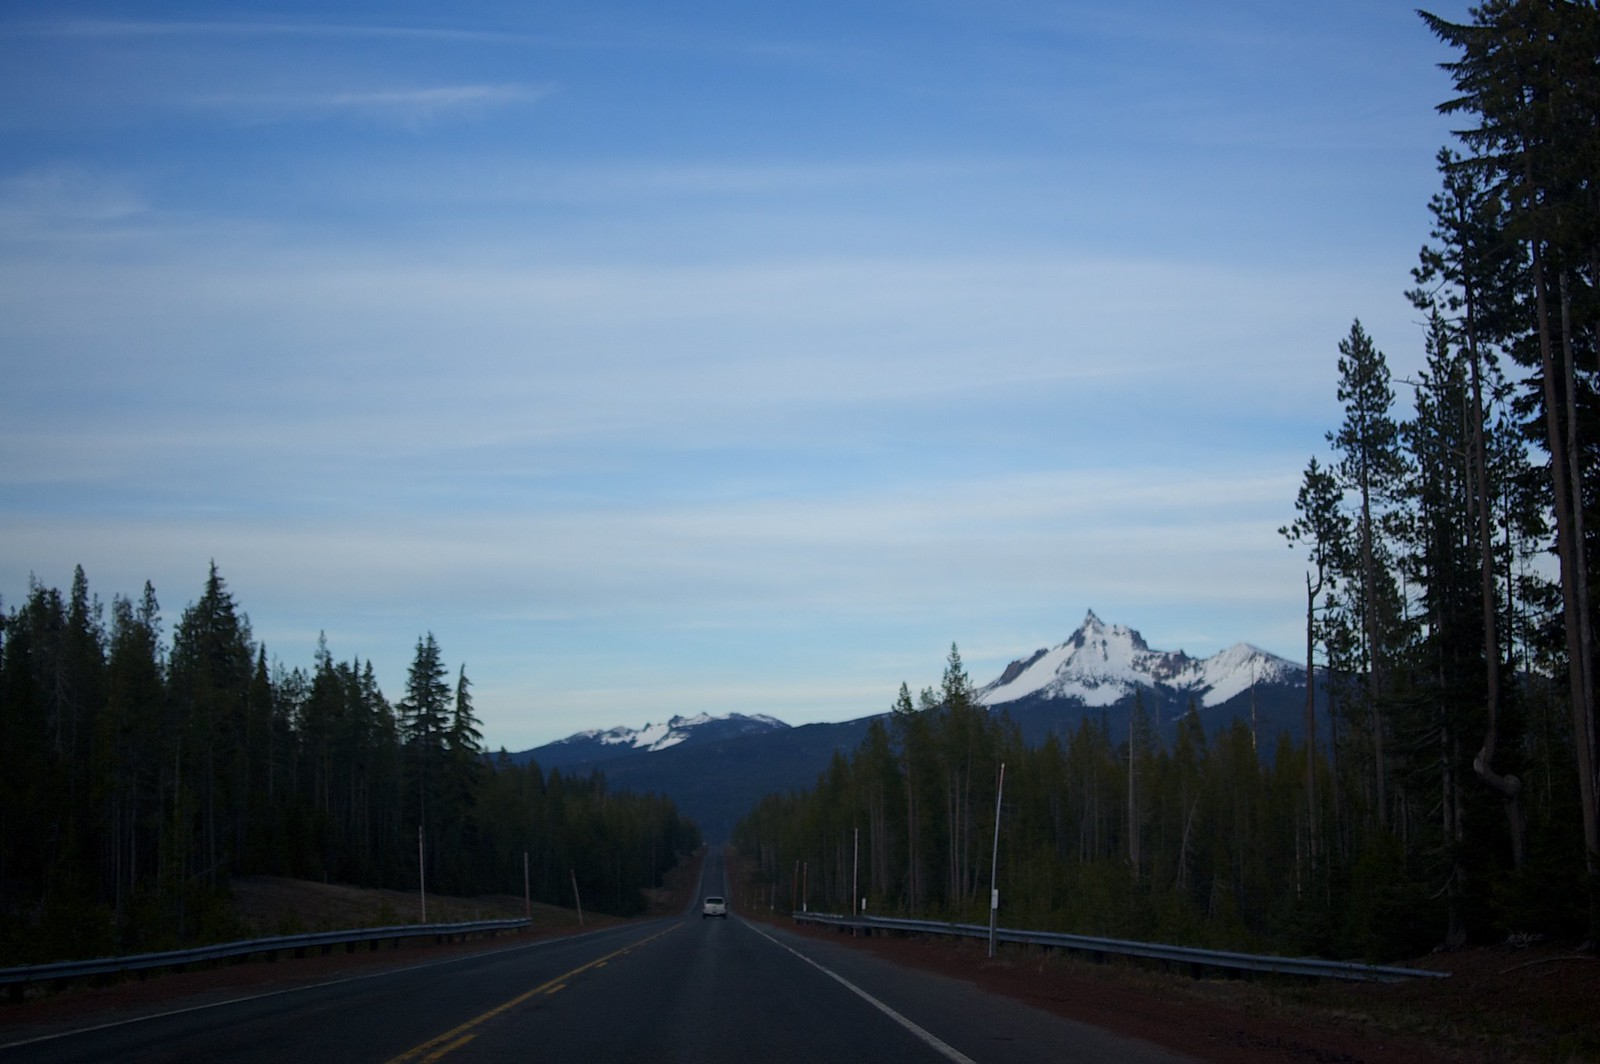 Starting the drive back to Eugene, OR